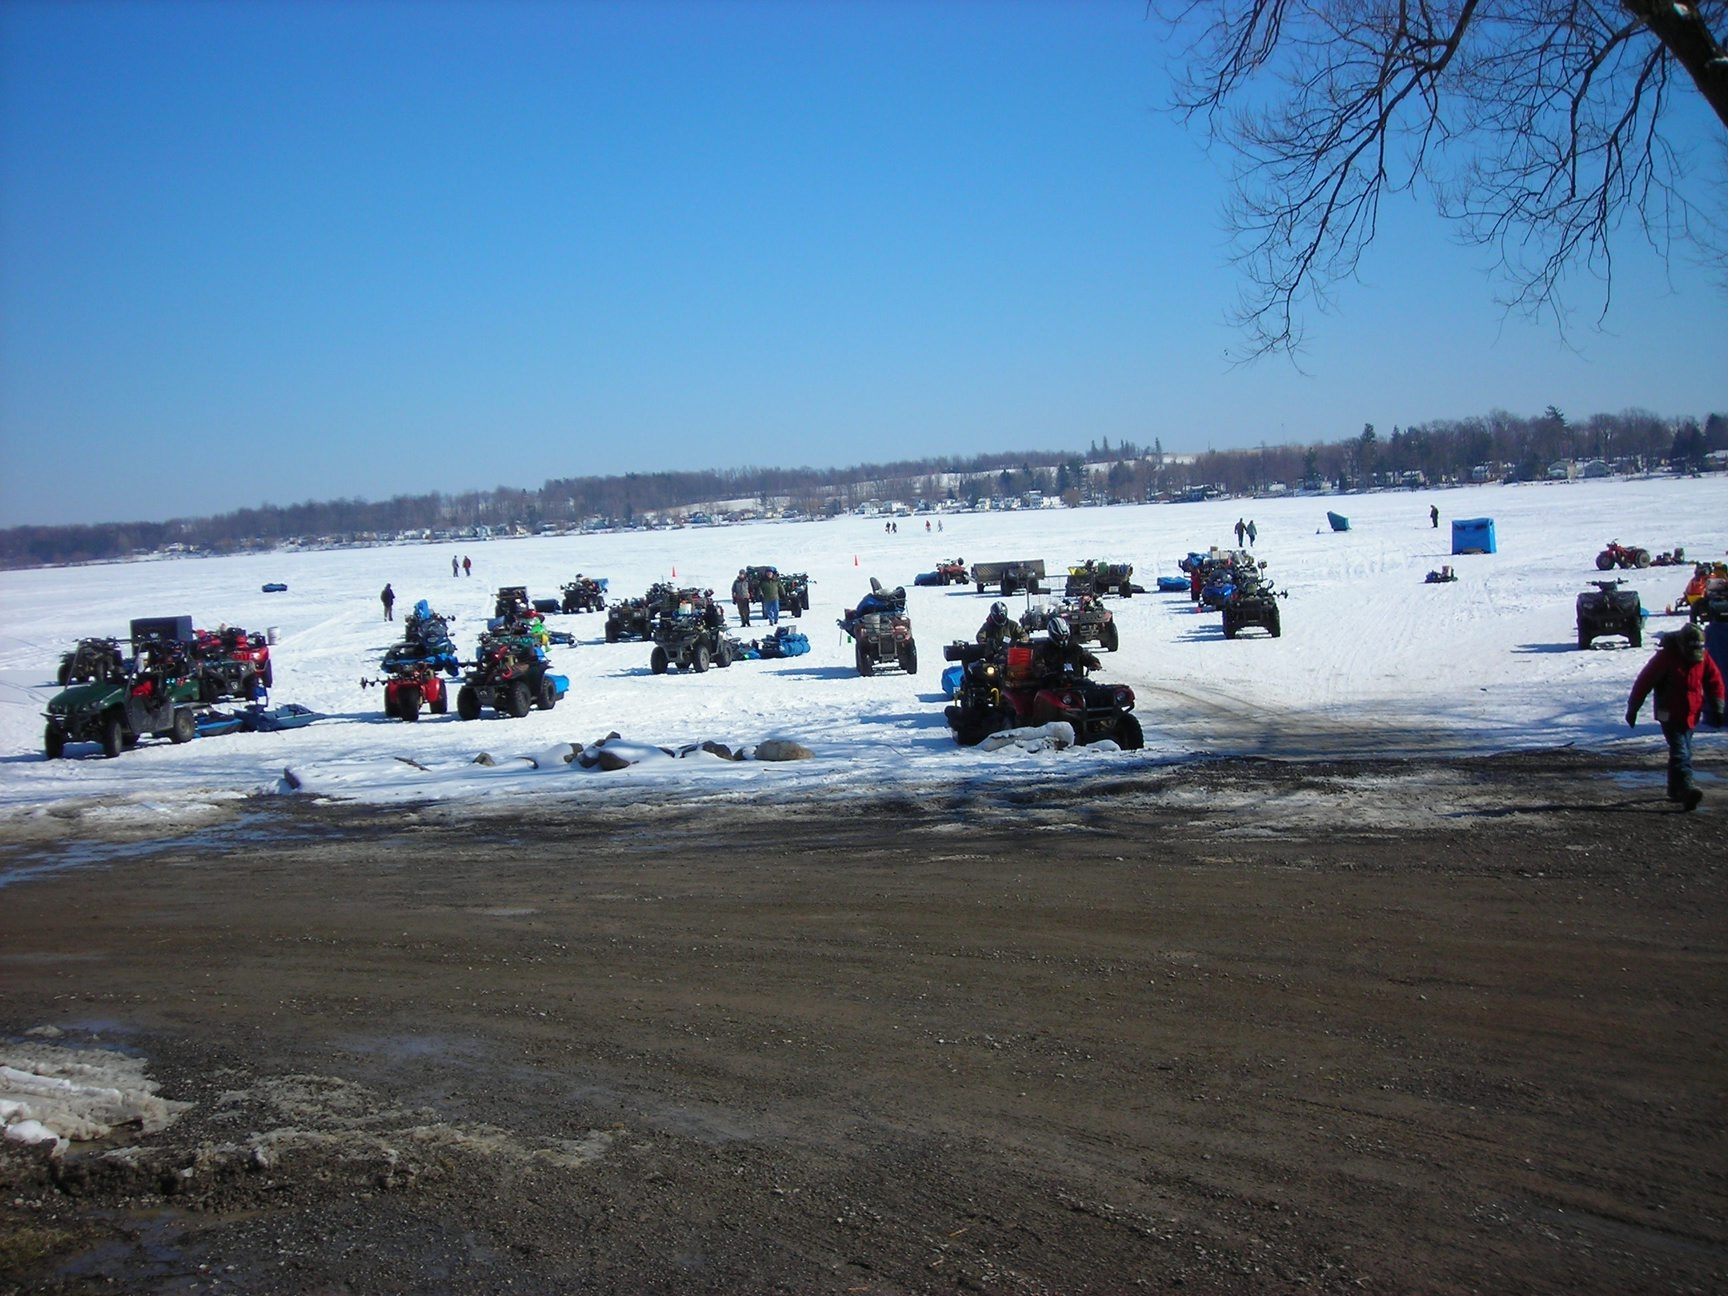 Machine runners and walkers have good late-season access to ice fishing spots such as this state launch at Silver Lake.